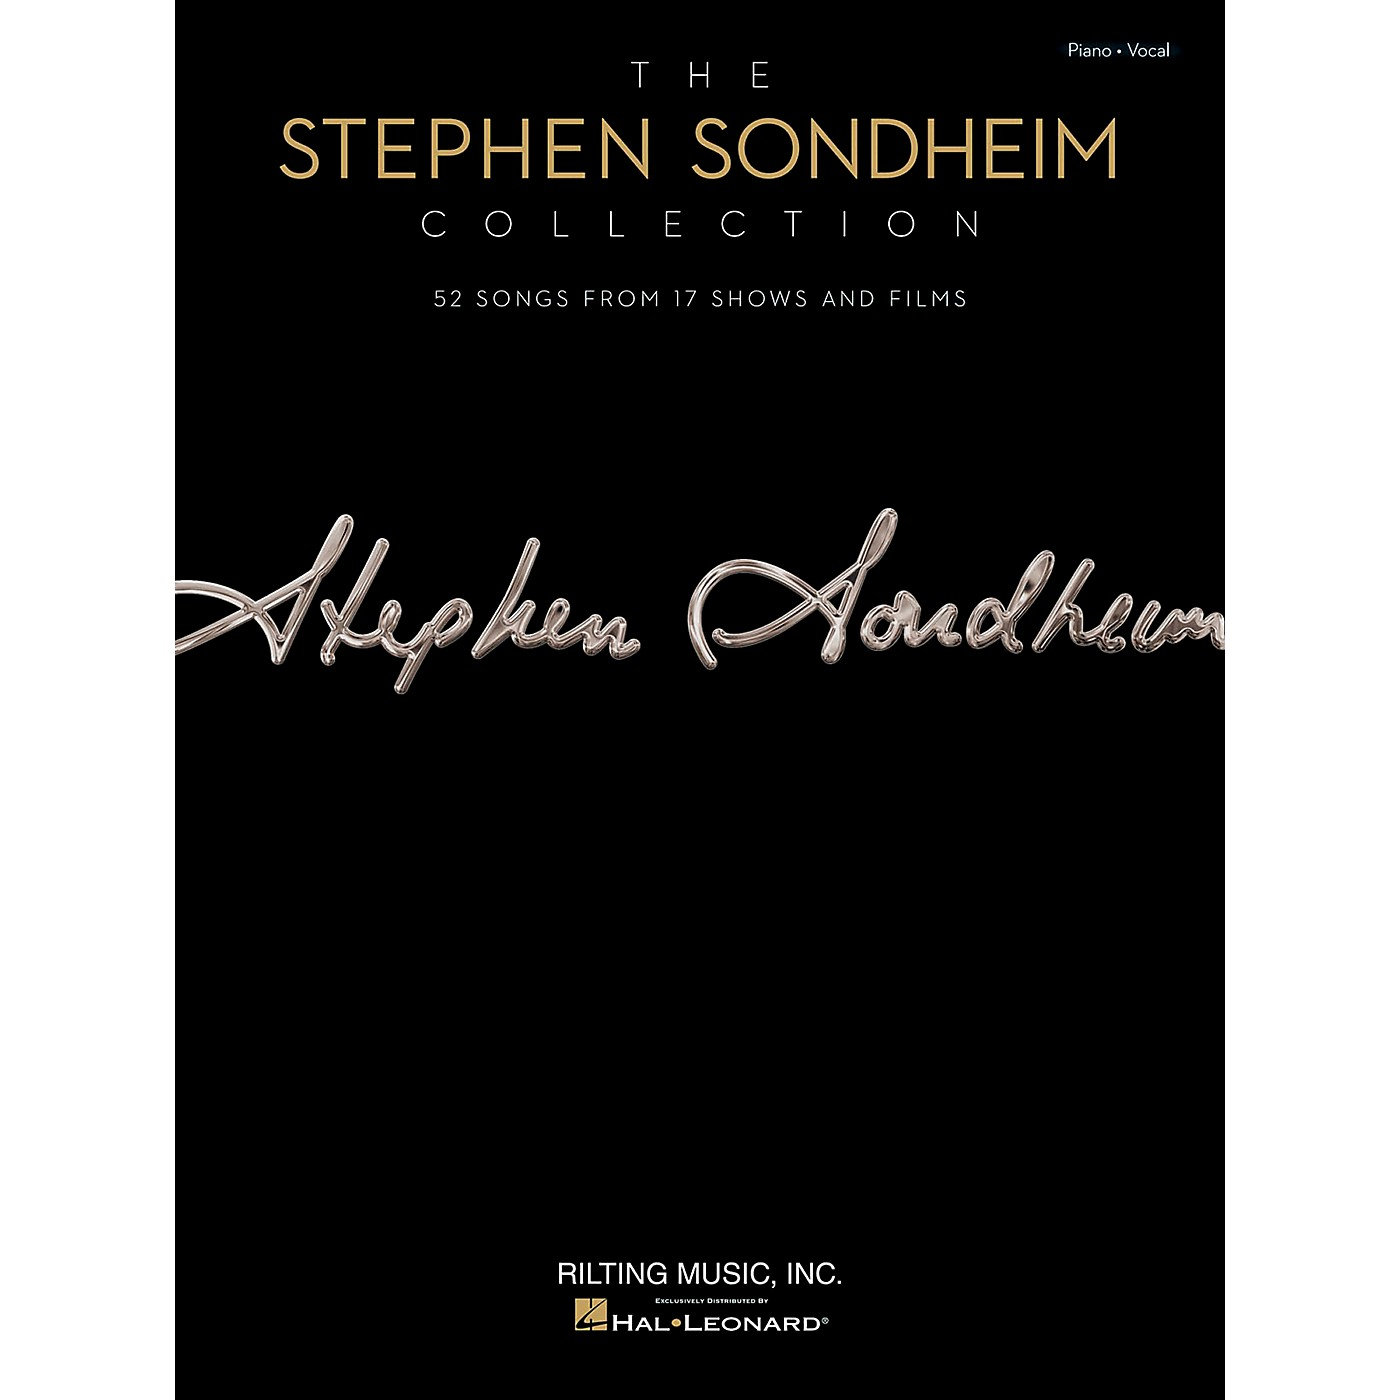 Hal Leonard The Stephen Sondheim Collection for Piano/Vocal/Vocal PVG thumbnail